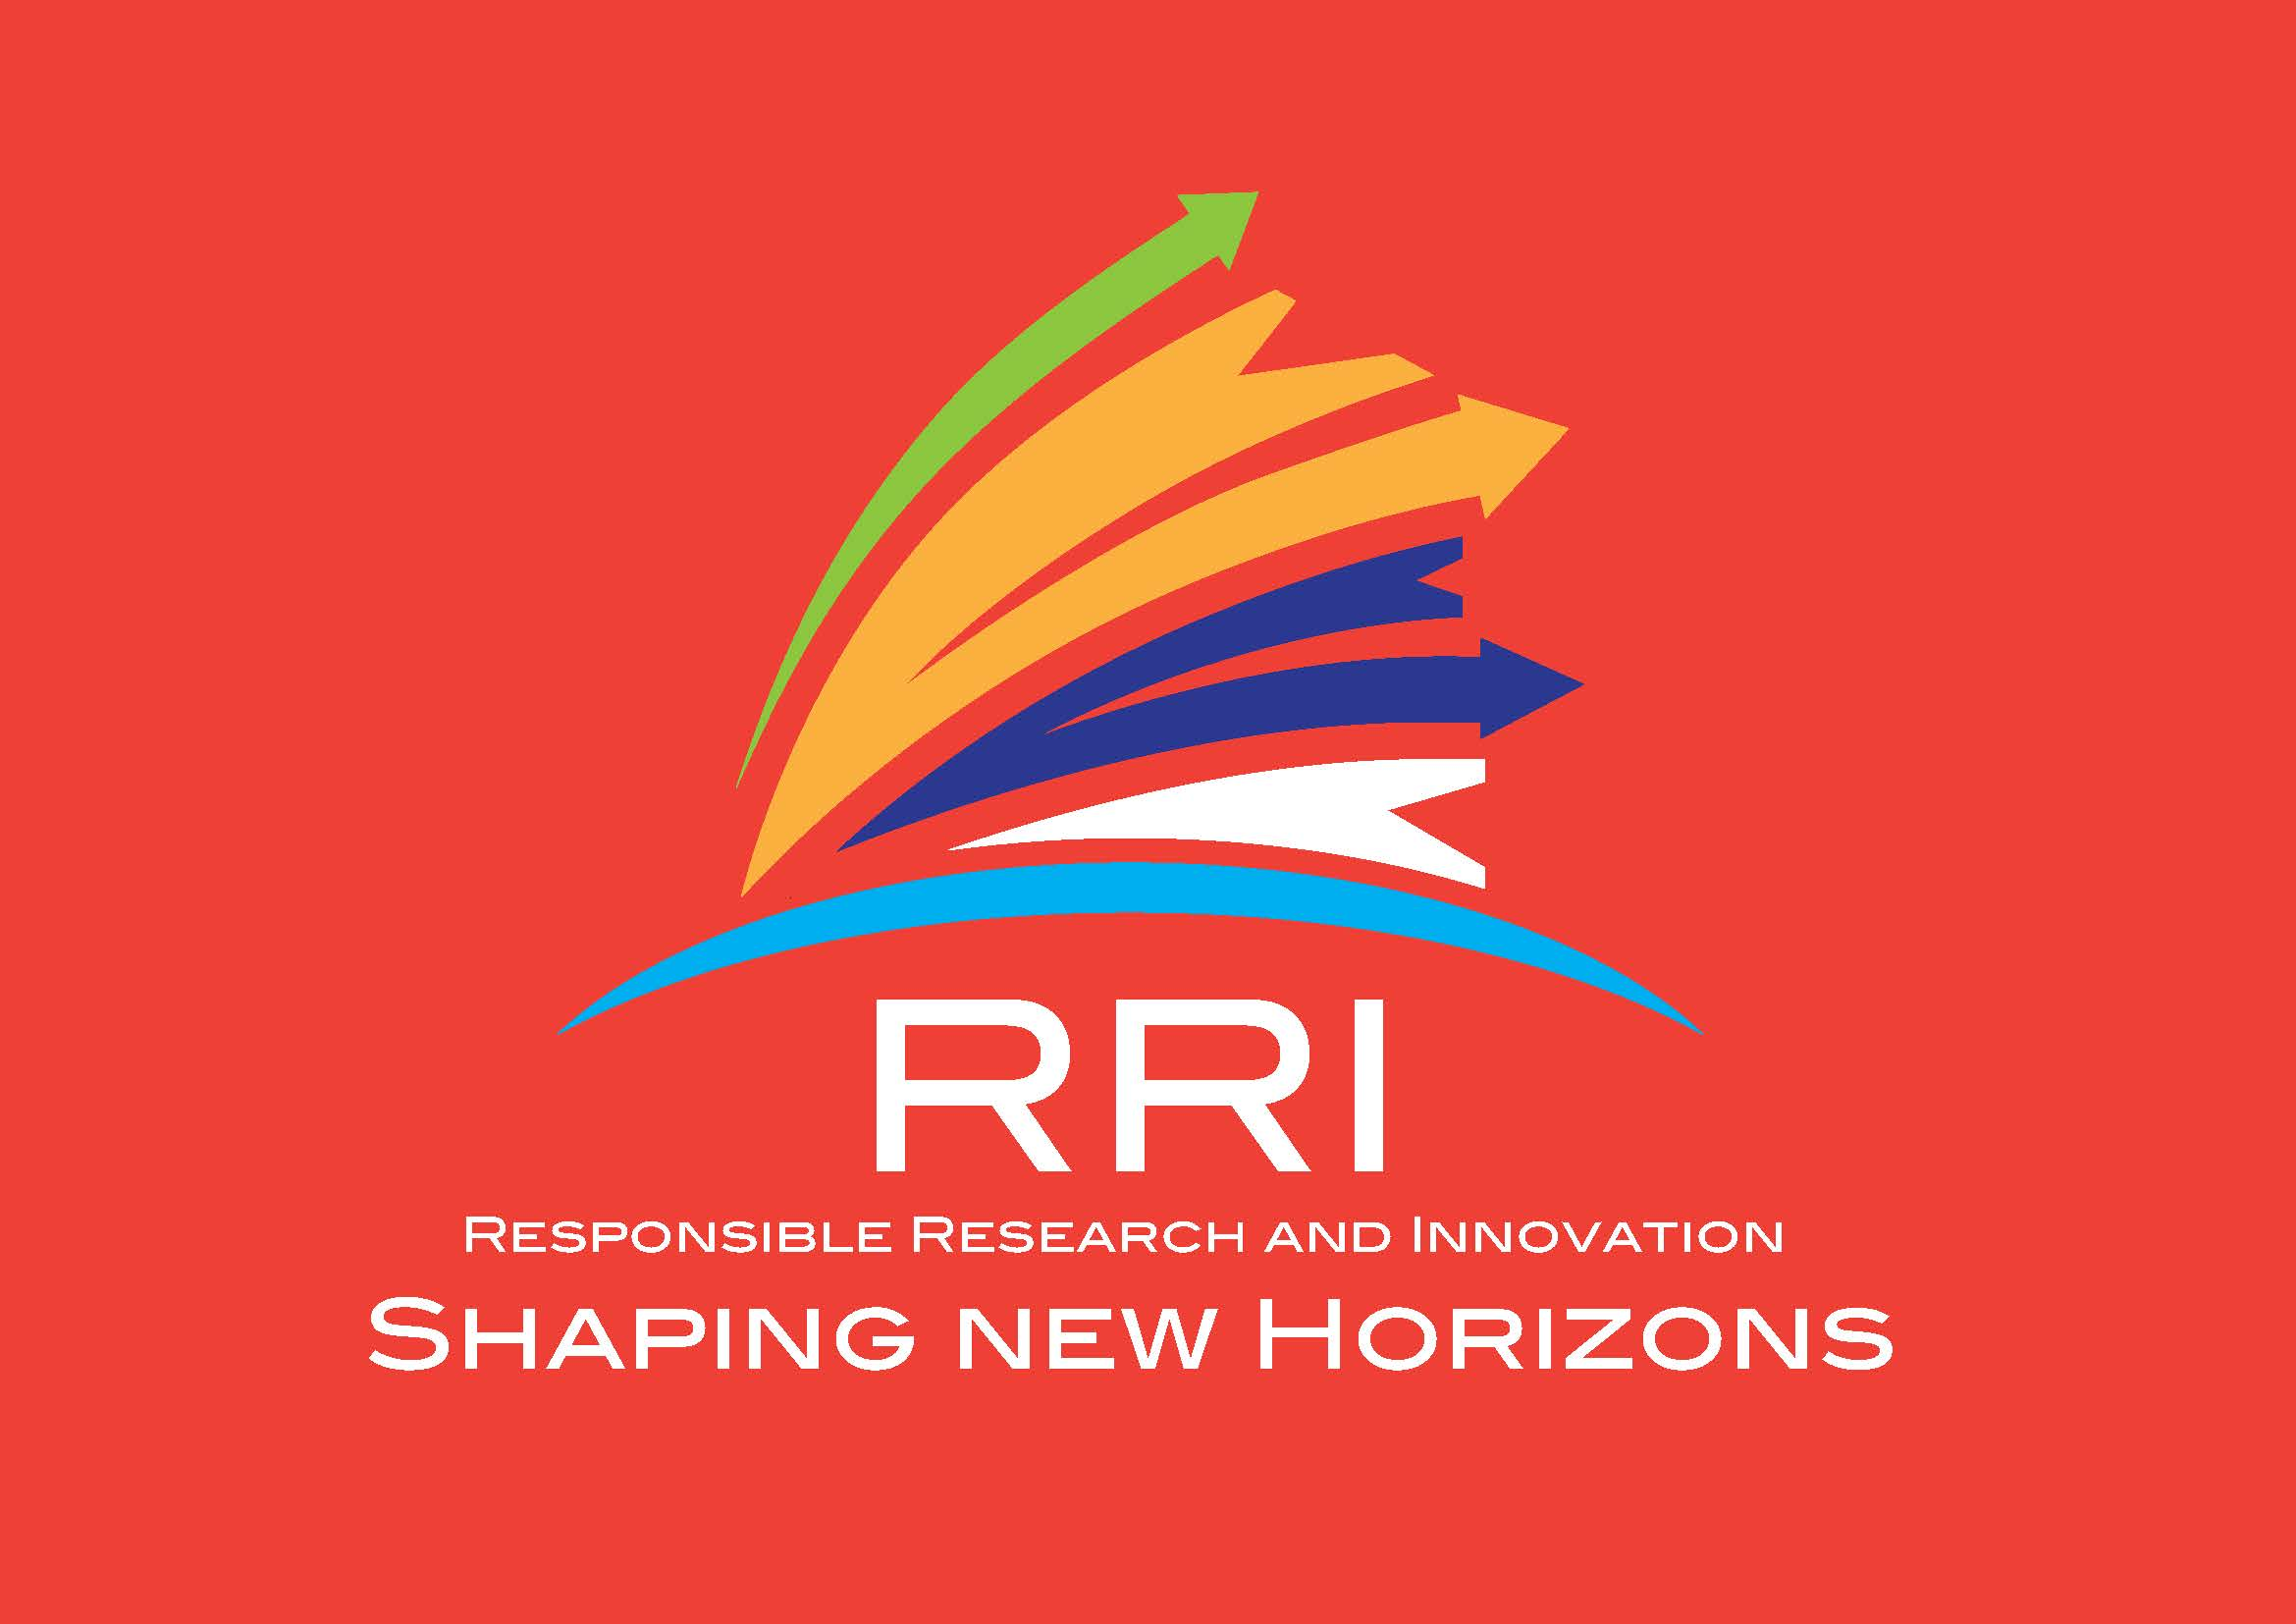 RRI-Shaping New Horizons_2016